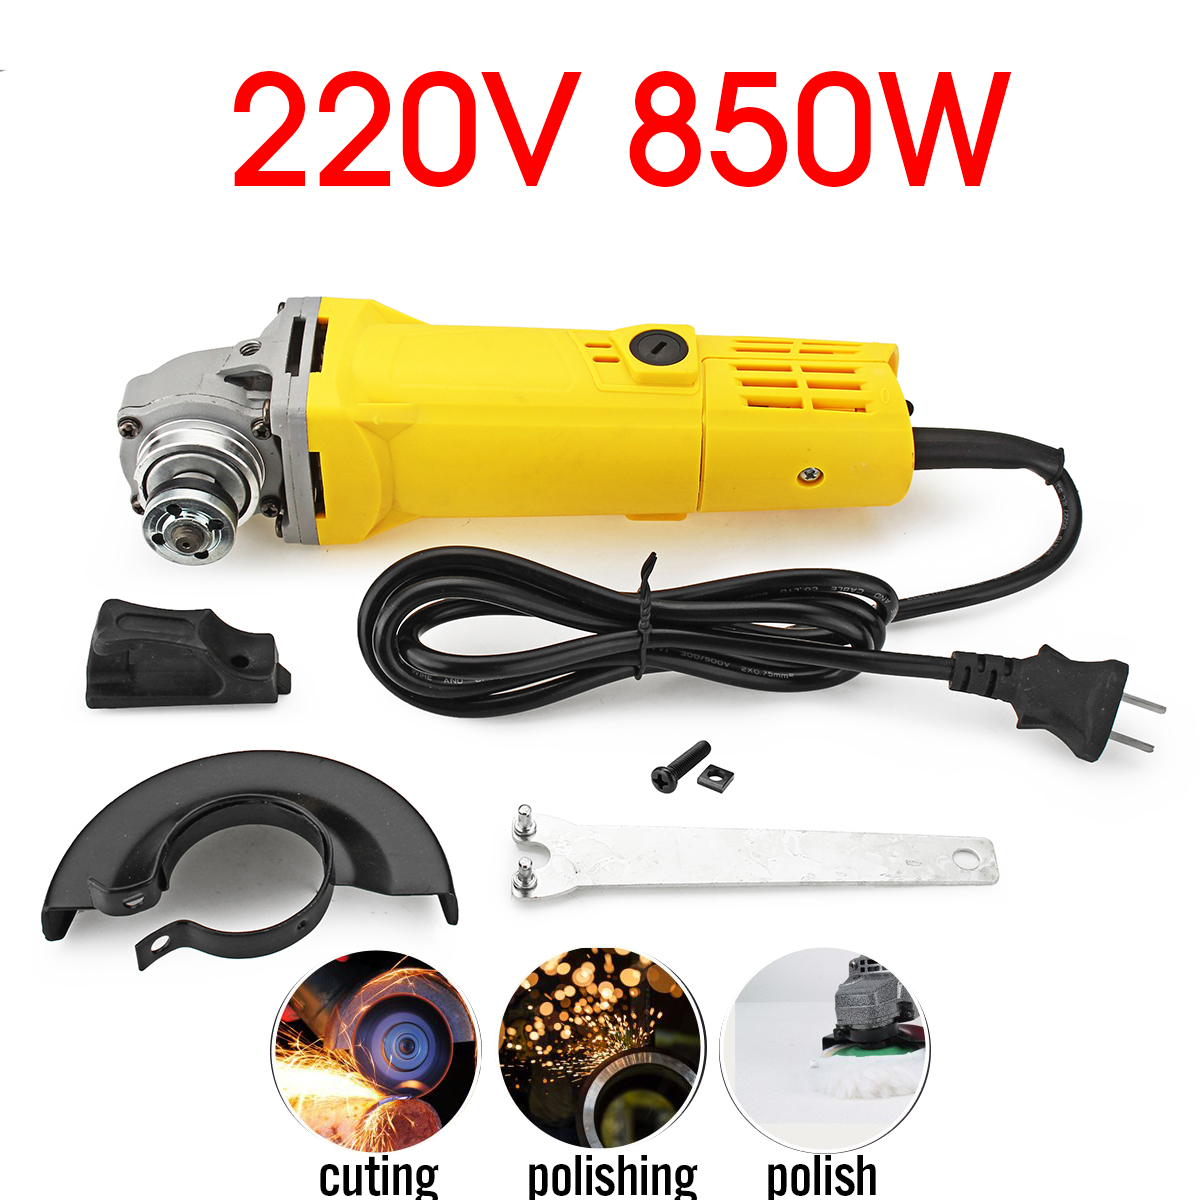 100mm 850W 220V Portable Electric Angle Grinder Muti-Function Household  Polish Machine Grinding Cutt